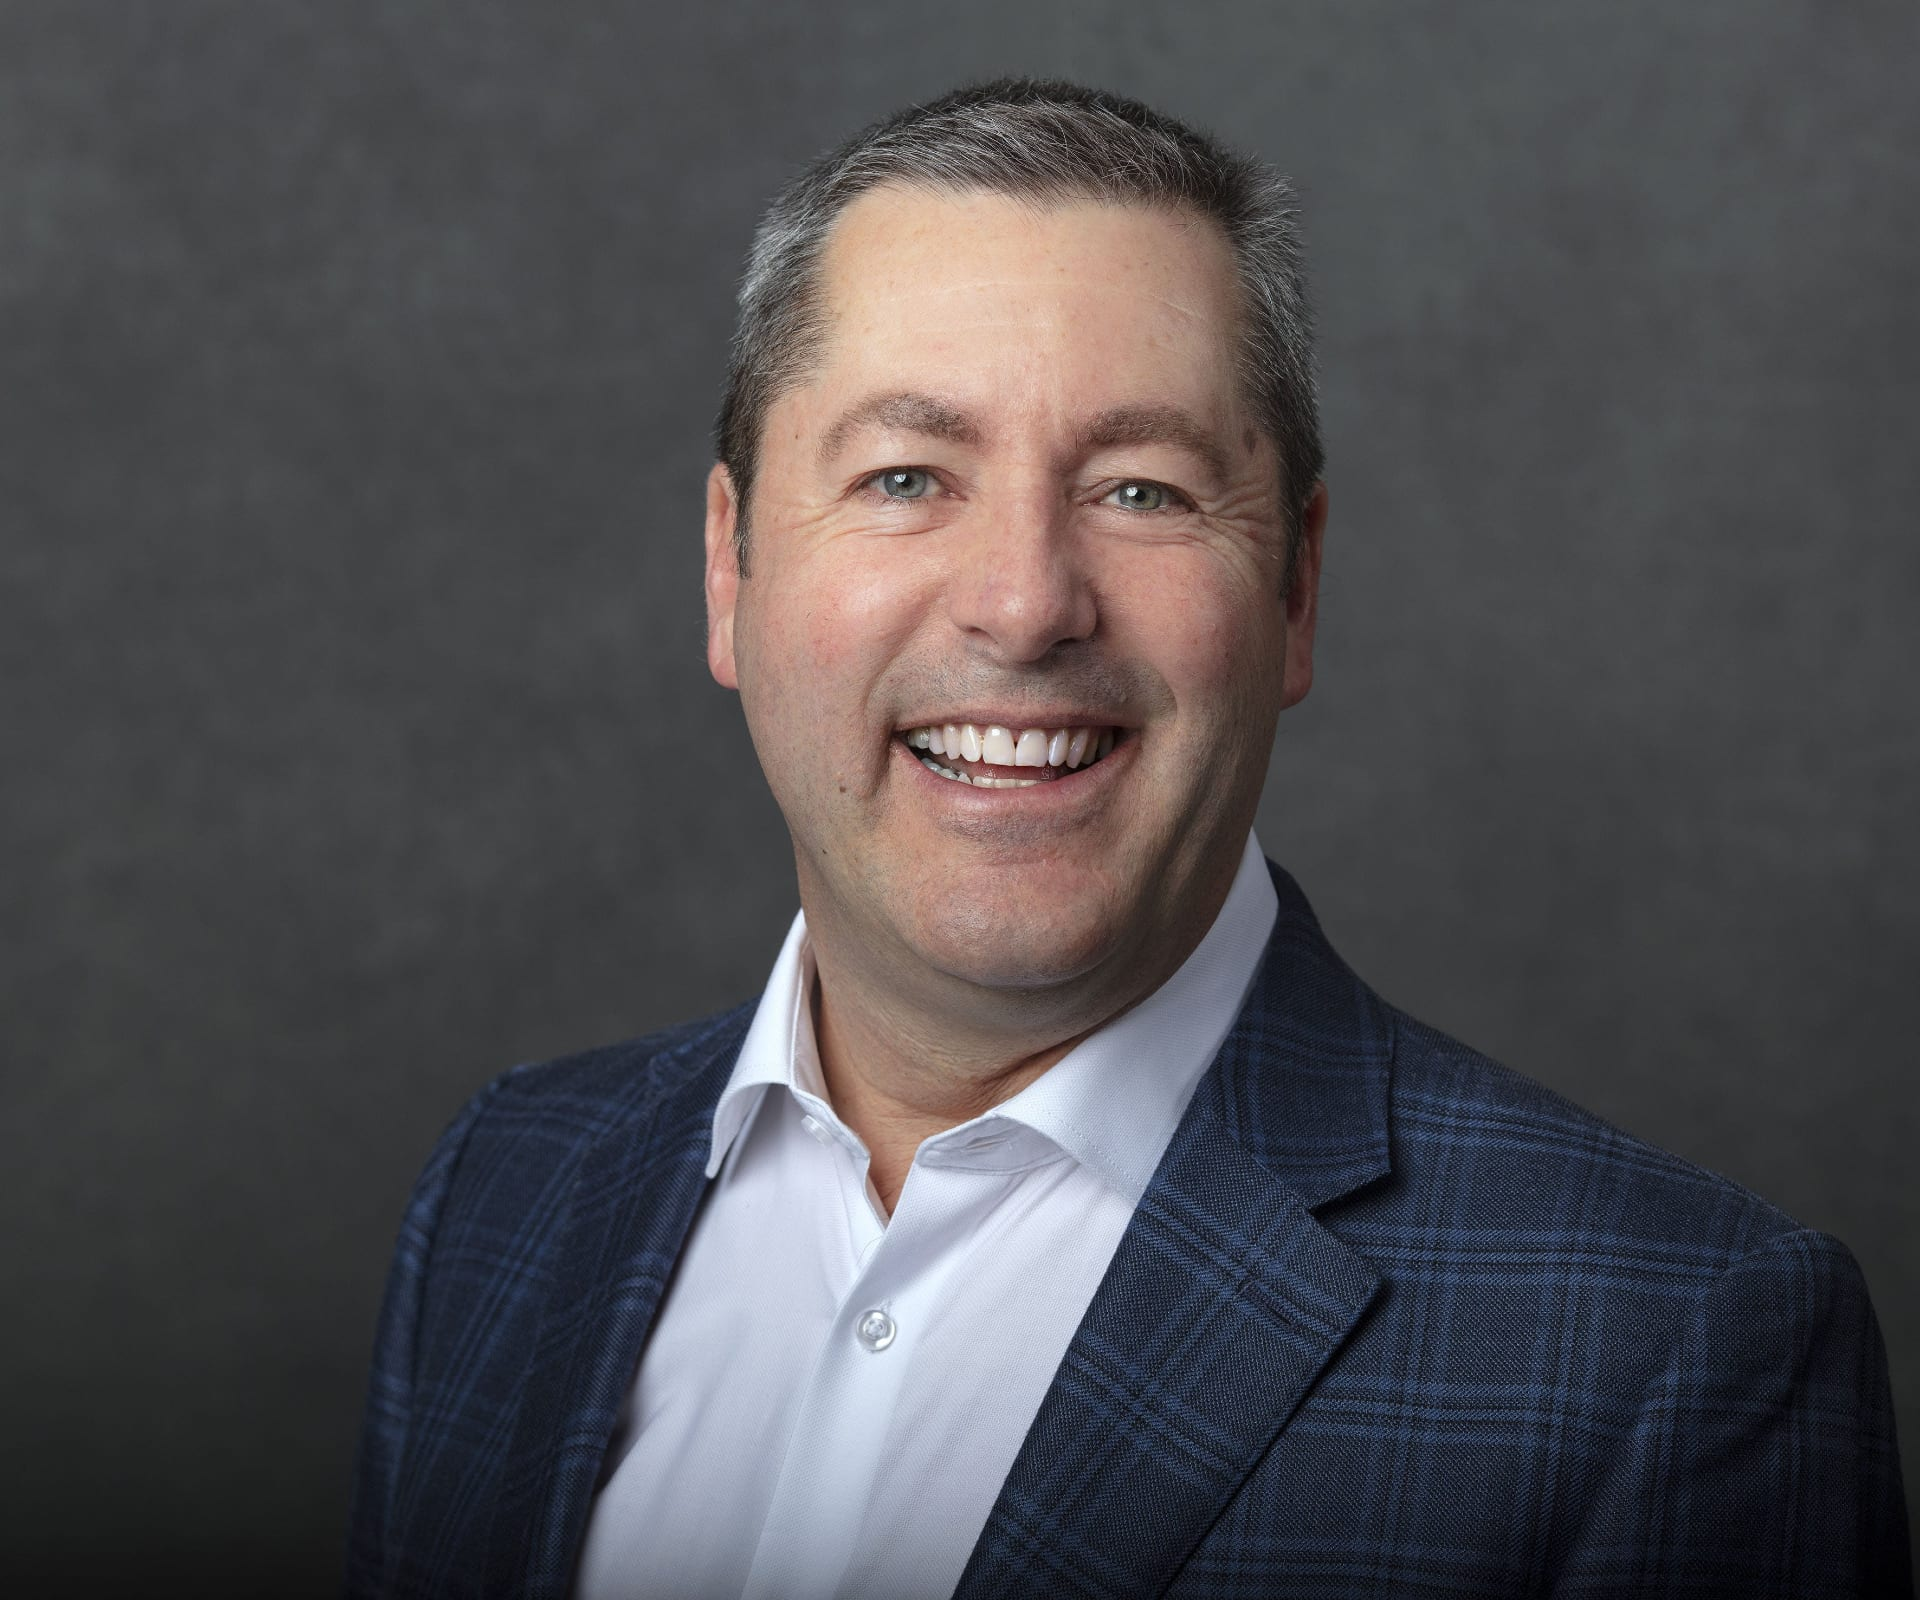 Terry Booth talks Aurora exit, new role as Australis CEO - Michael Singer